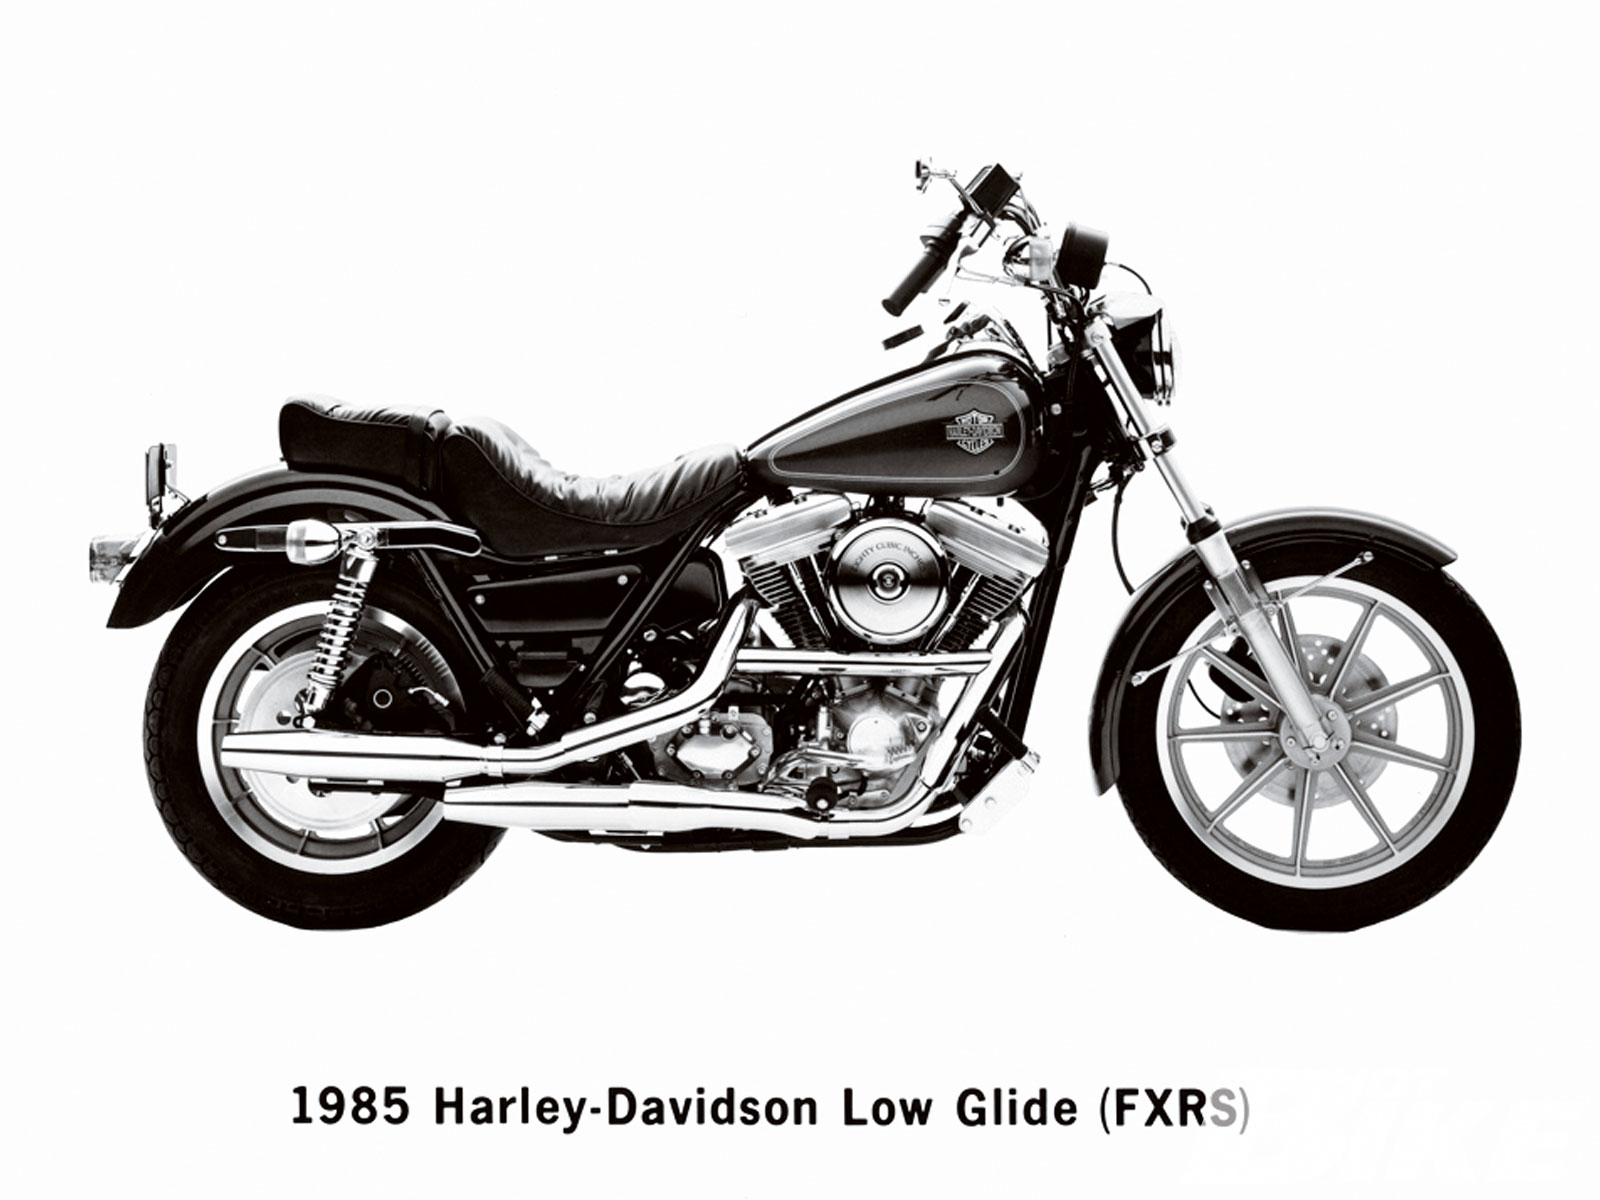 1990 Harley Fxrs Wiring Diagram Opinions About Softail 1984 Davidson Fxr Frame Elsalvadorla Diagrams 1988